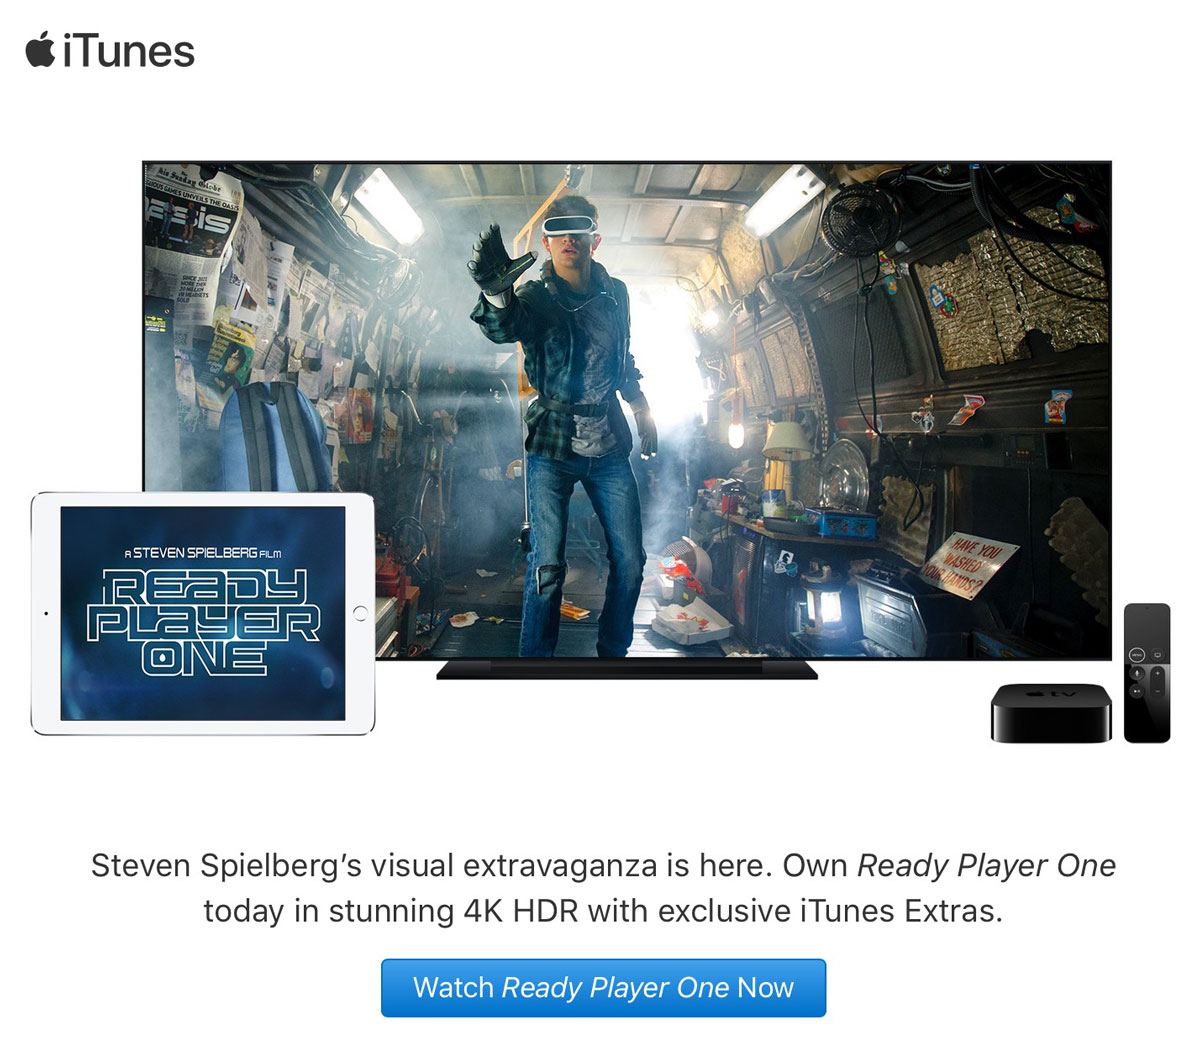 Ready Player One on iTunes